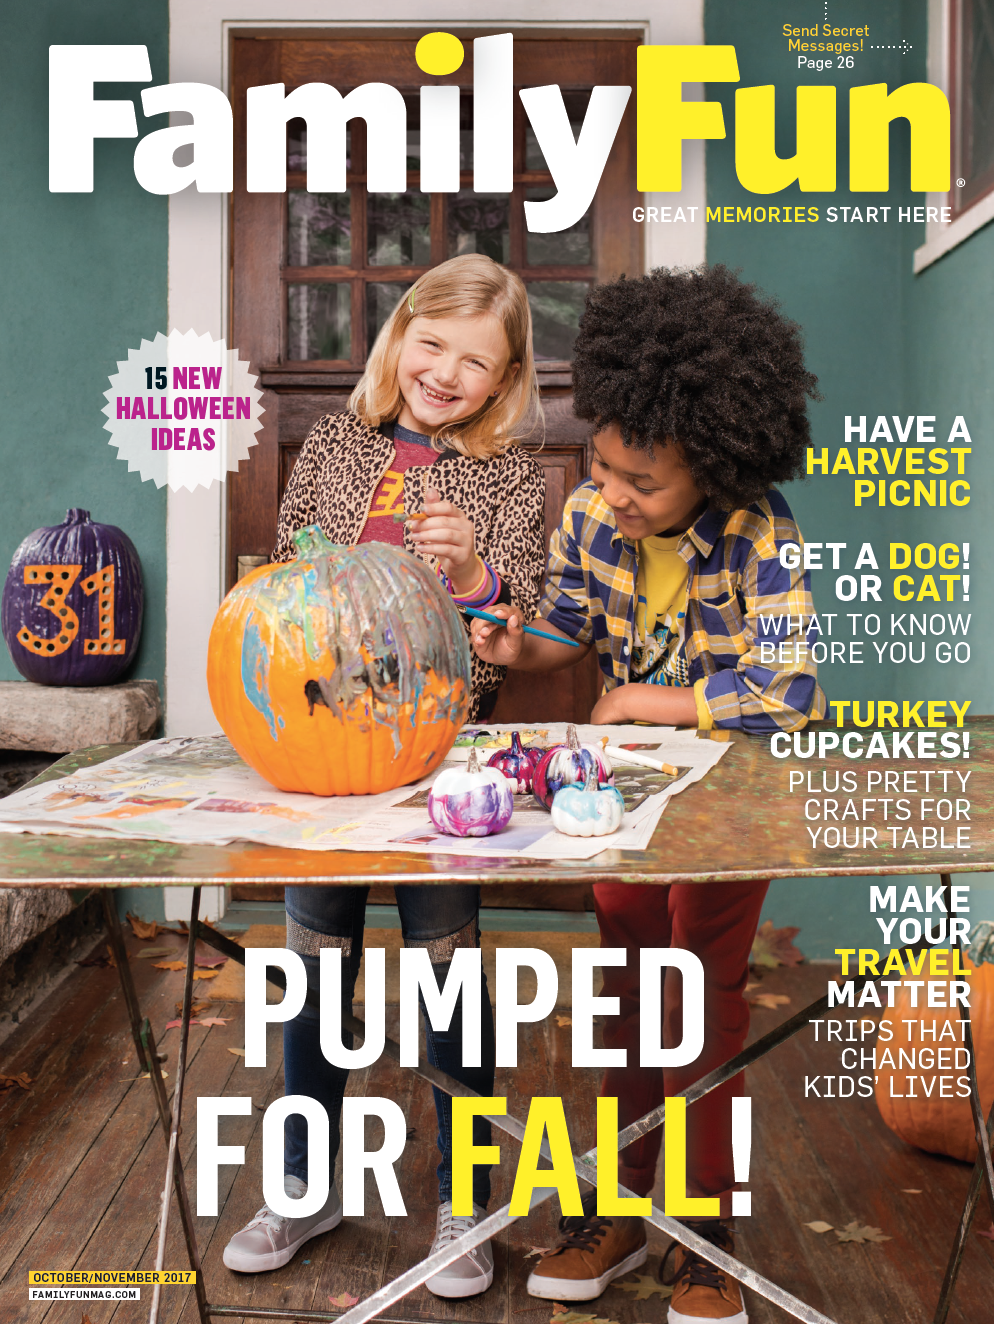 FamilyFun Oct/Nov 2017